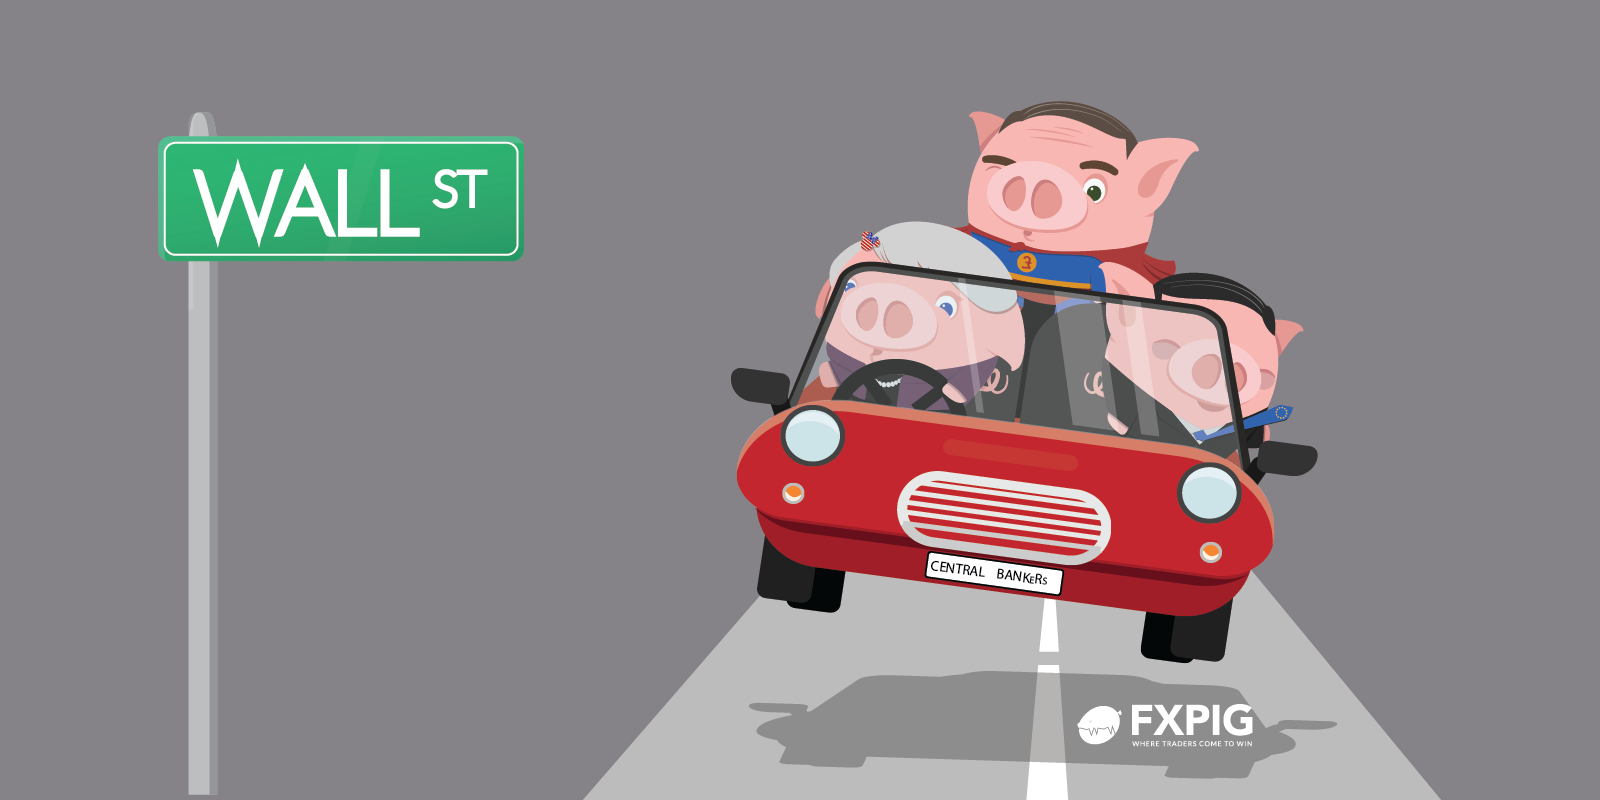 Central_banks_the-only-game_Forex_FXPIG